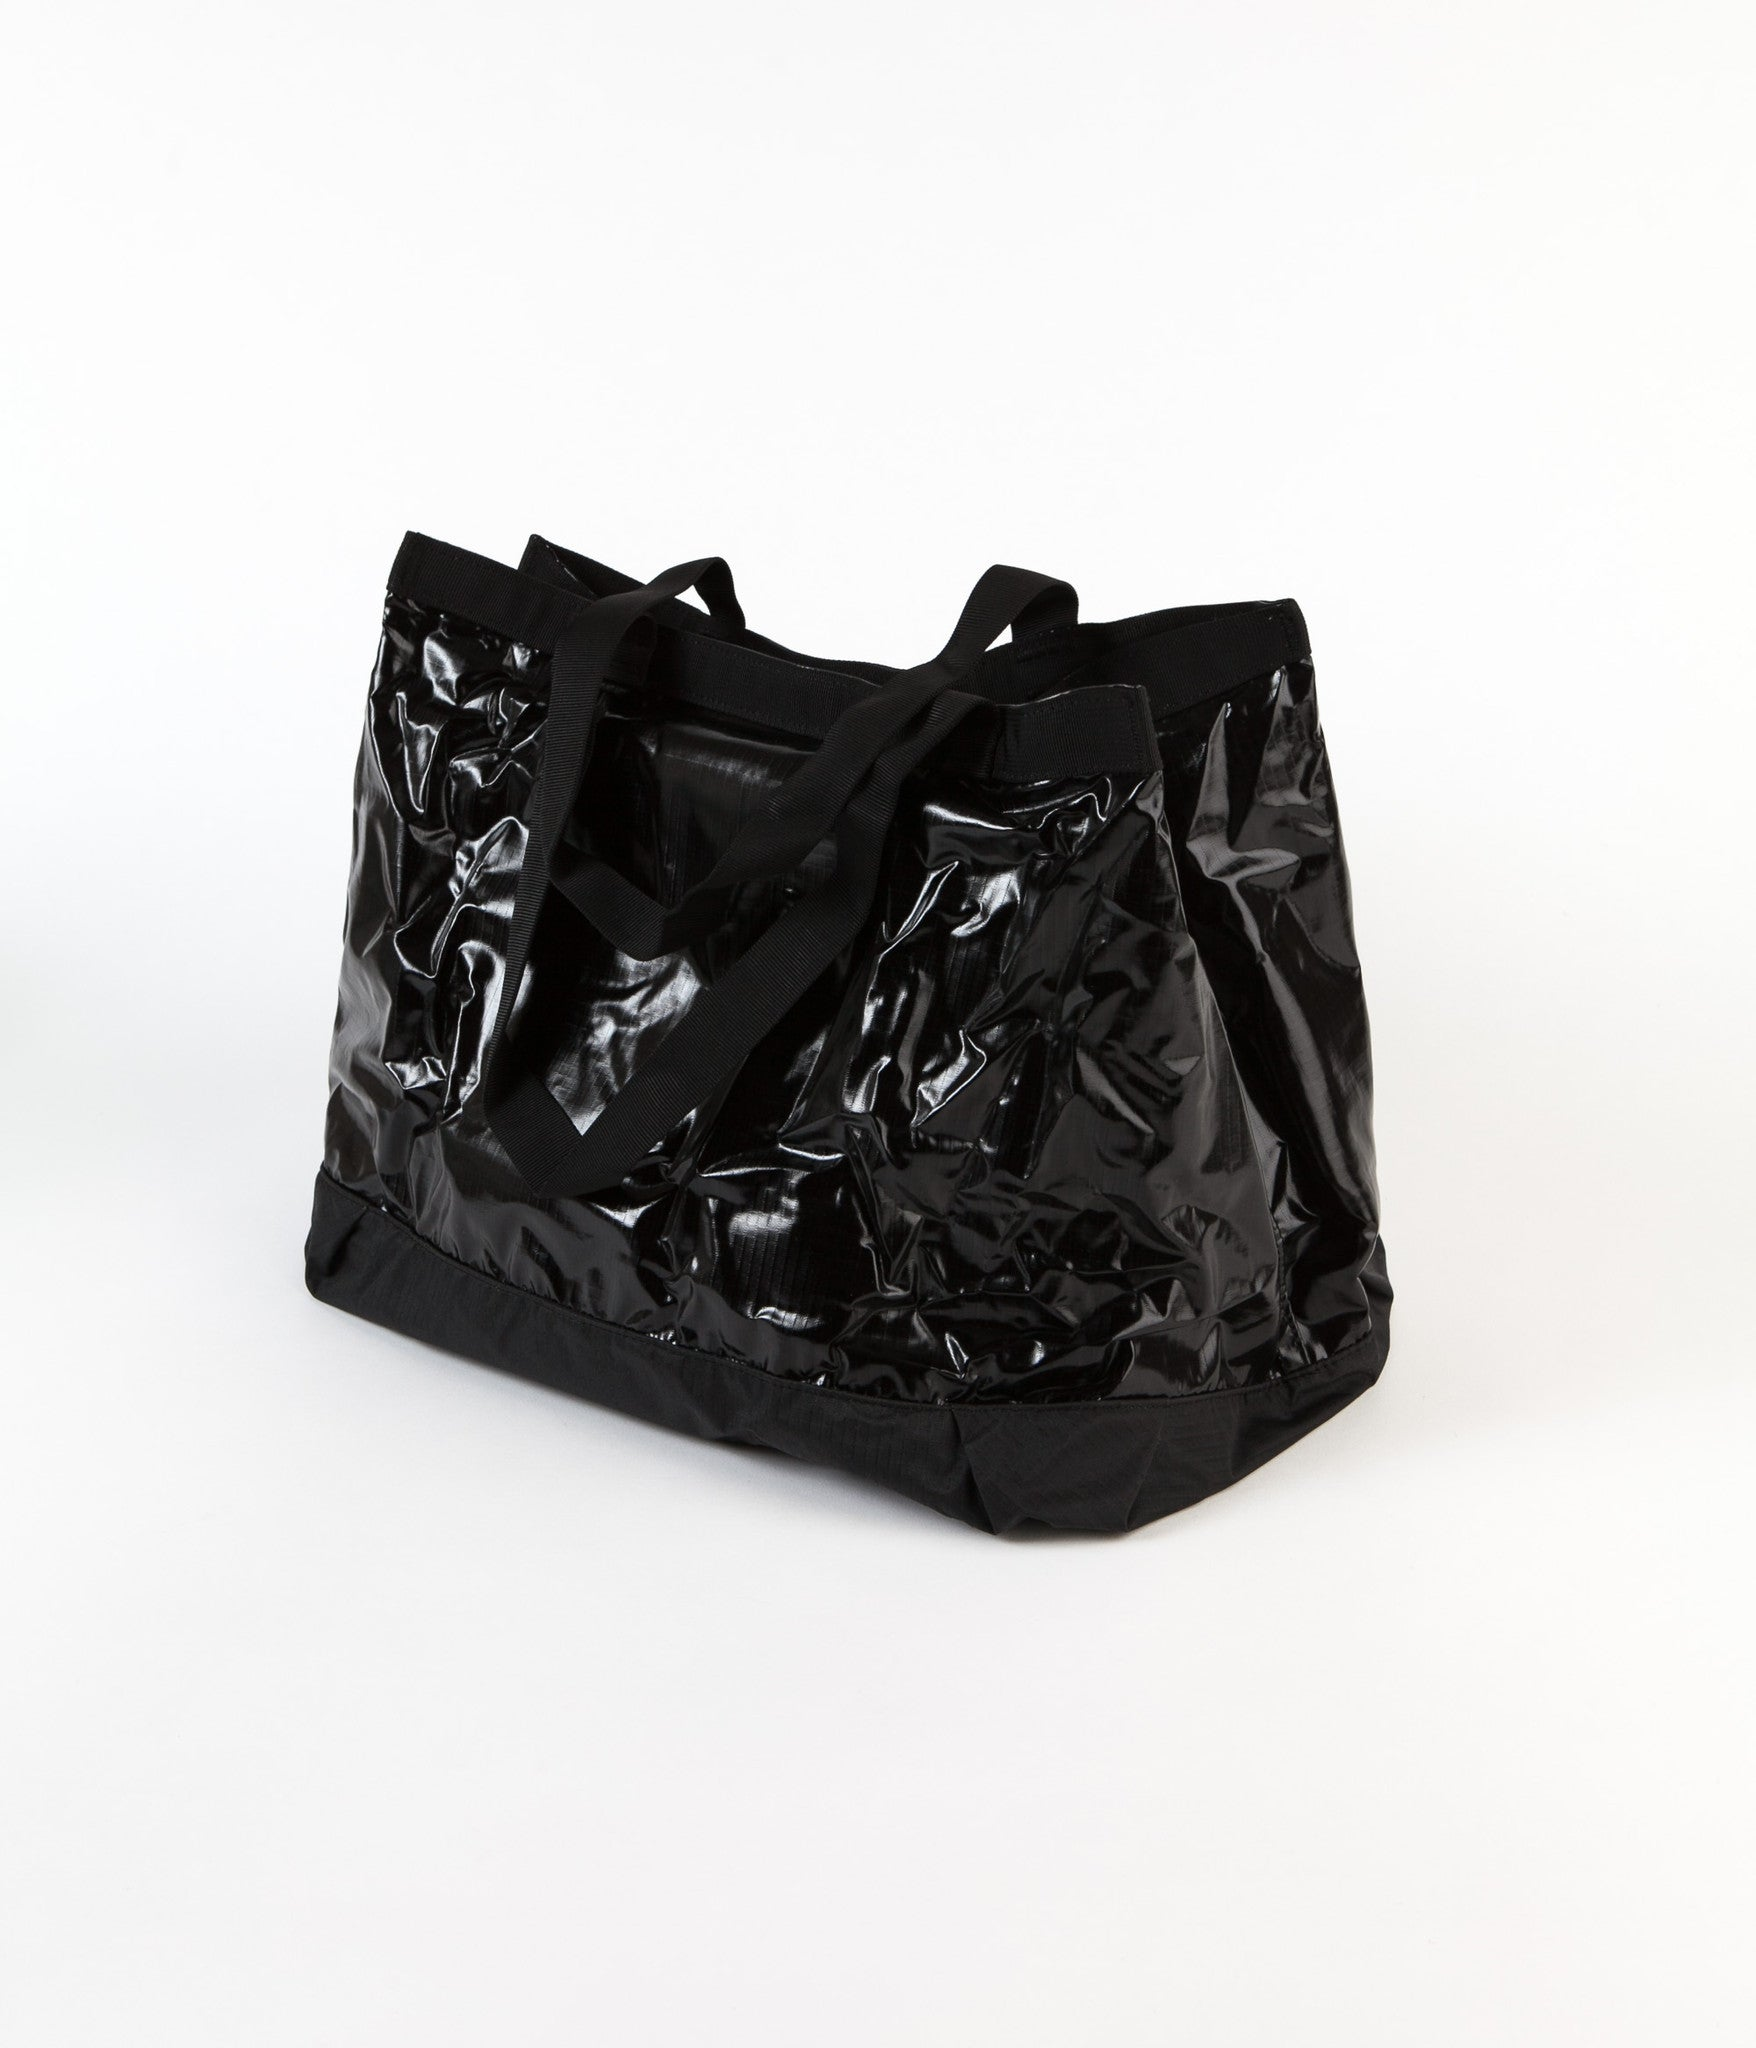 Patagonia Lightweight Black Hole Gear Tote Bag - Black